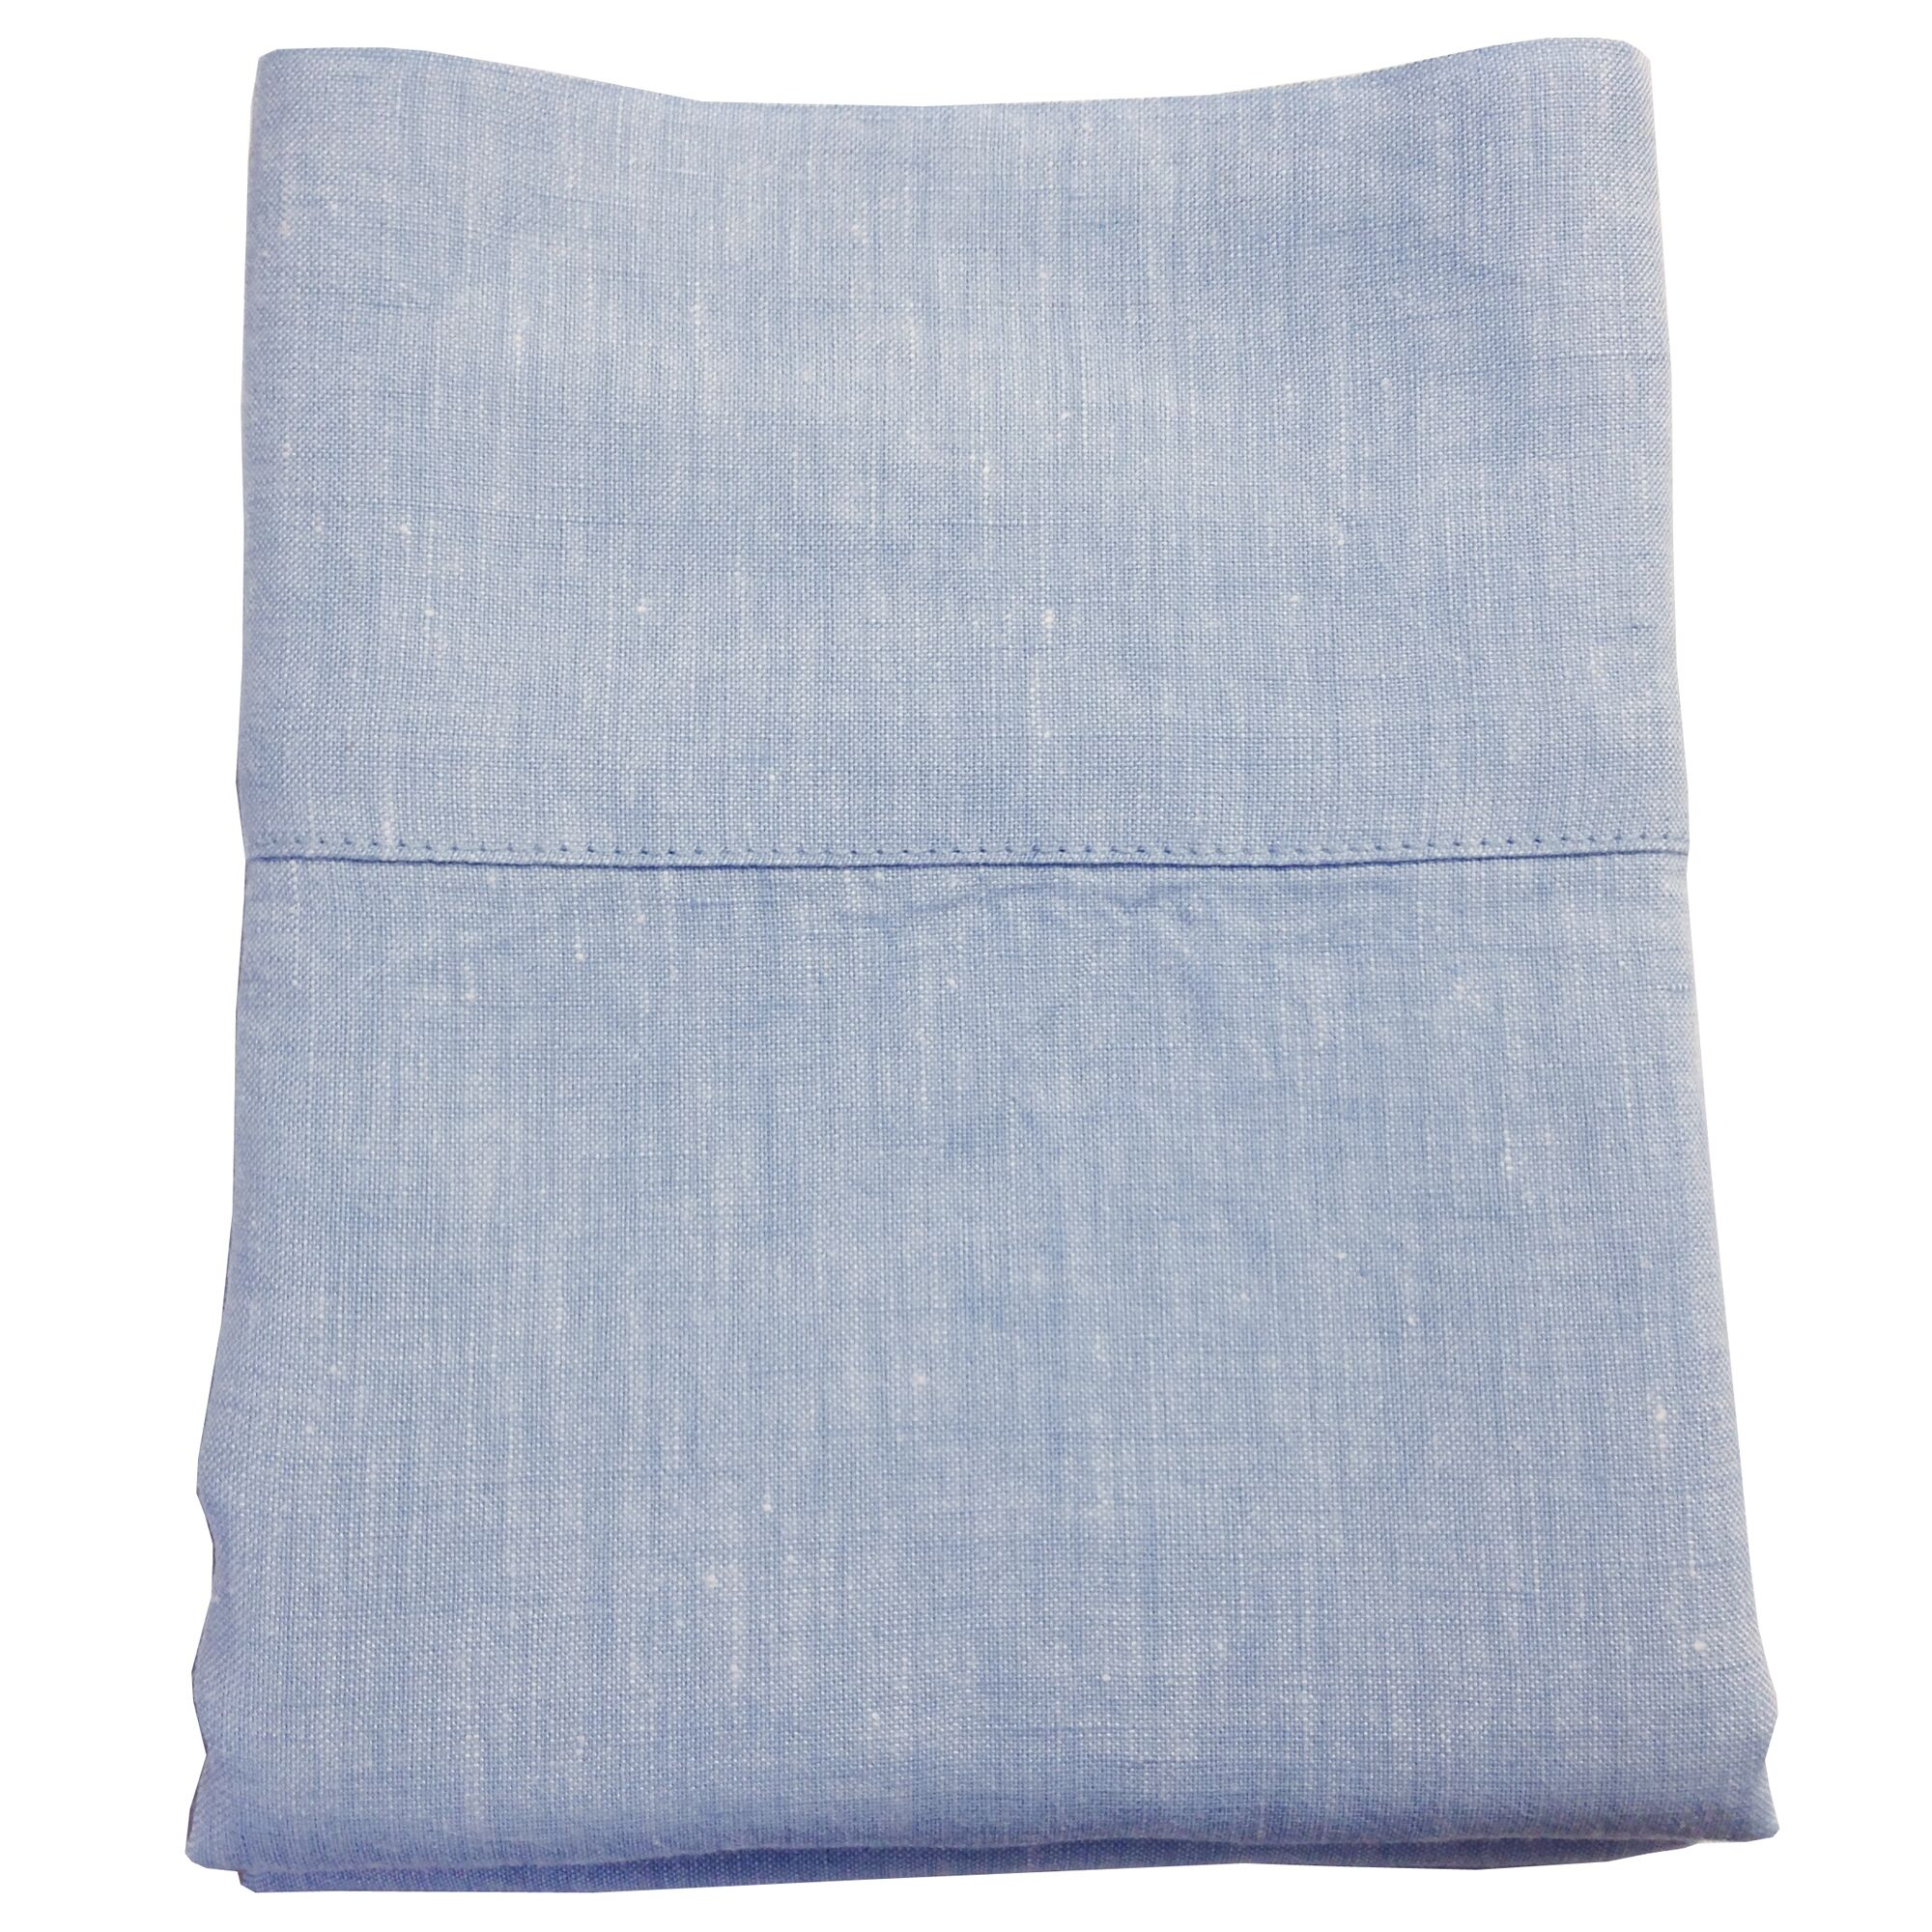 Linen Pillowcase Size: Standard/Queen, Color: Pale Blue